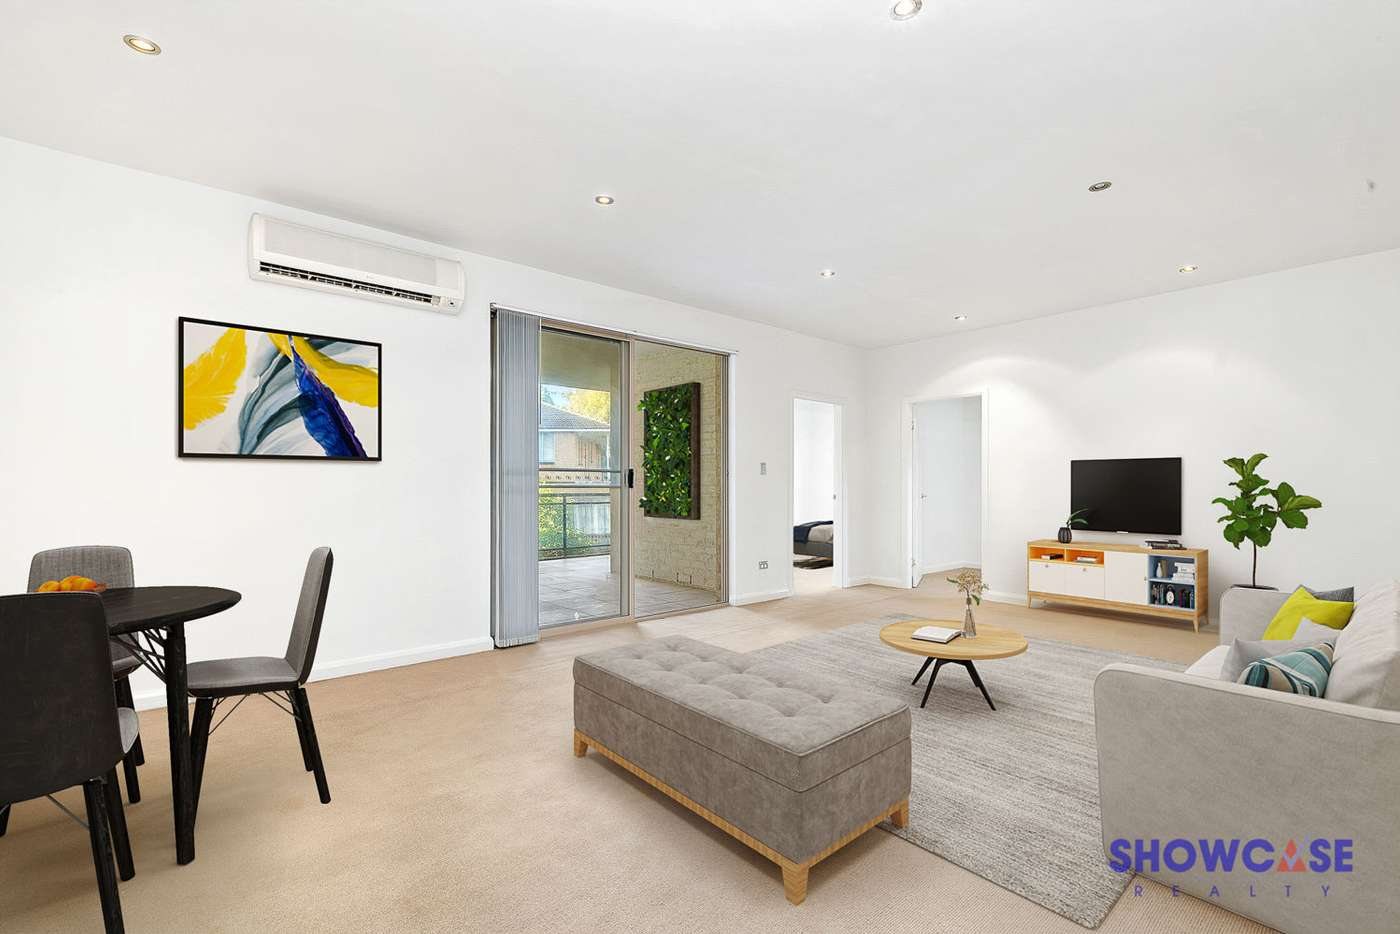 Main view of Homely apartment listing, 14/1-7 Young Road, Carlingford NSW 2118